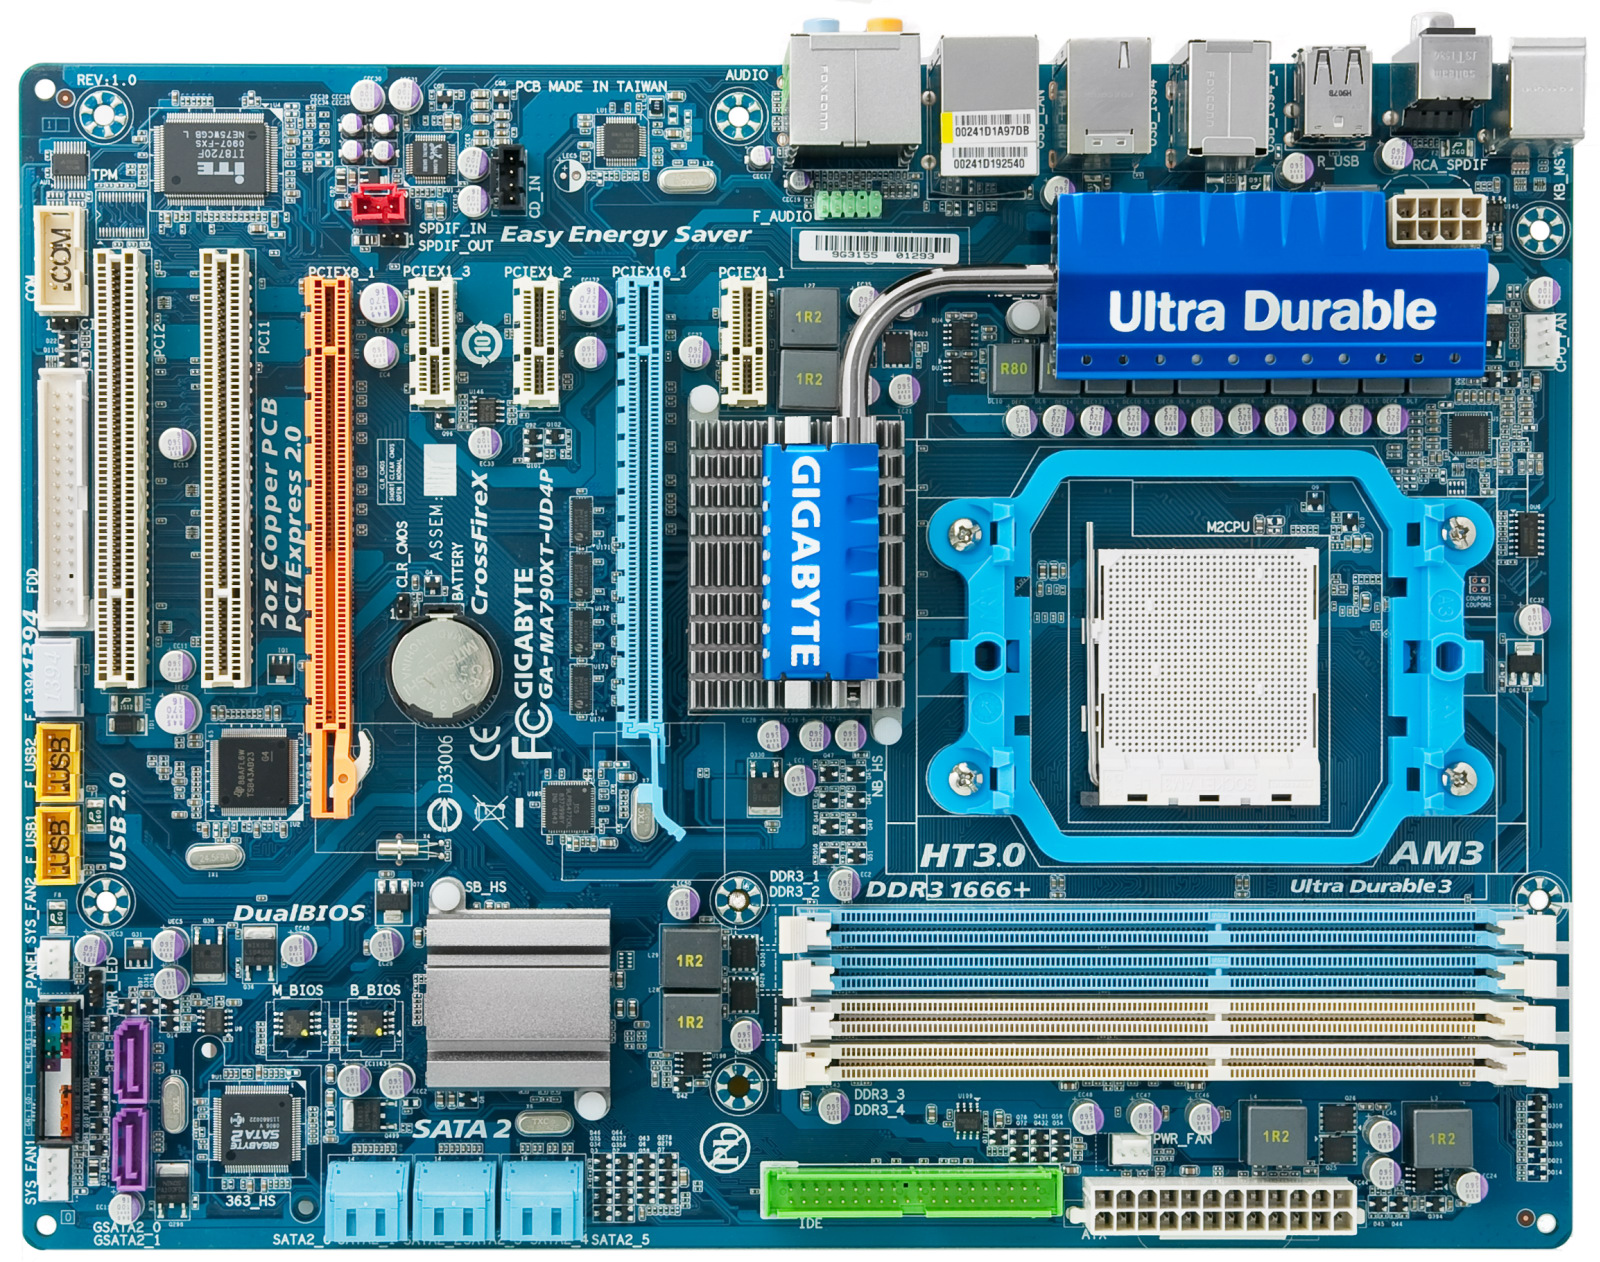 Ixbt Labs Gigabyte Ma790xt Ud4p Motherboard Page 1